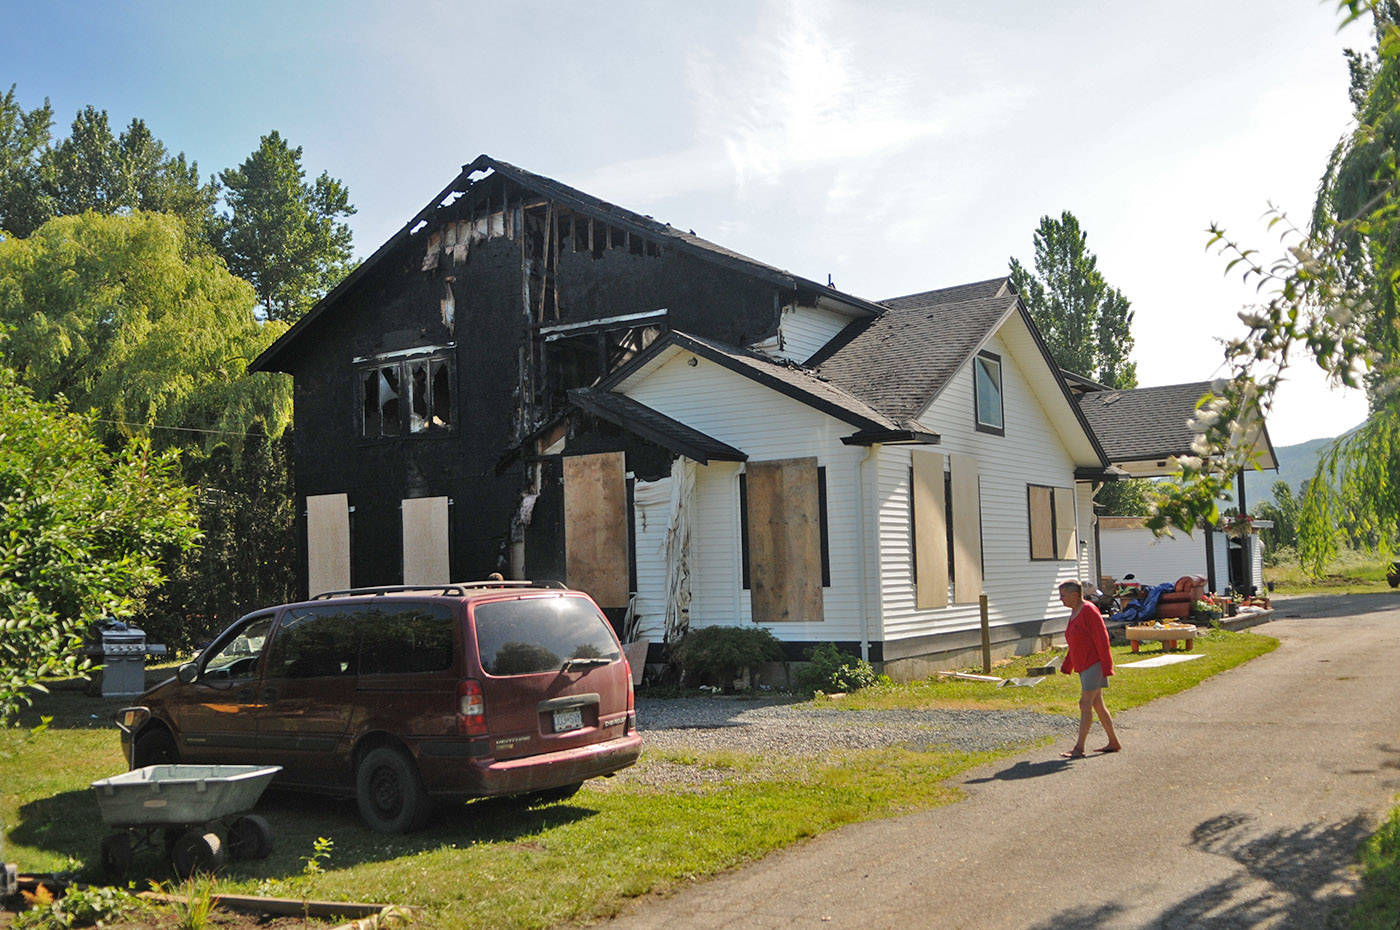 A tenant walks in front of her home on Boundary Road on Friday, June 18, 2021 after it was destroyed by fire the night before in Chilliwack. (Jenna Hauck/ Chilliwack Progress)